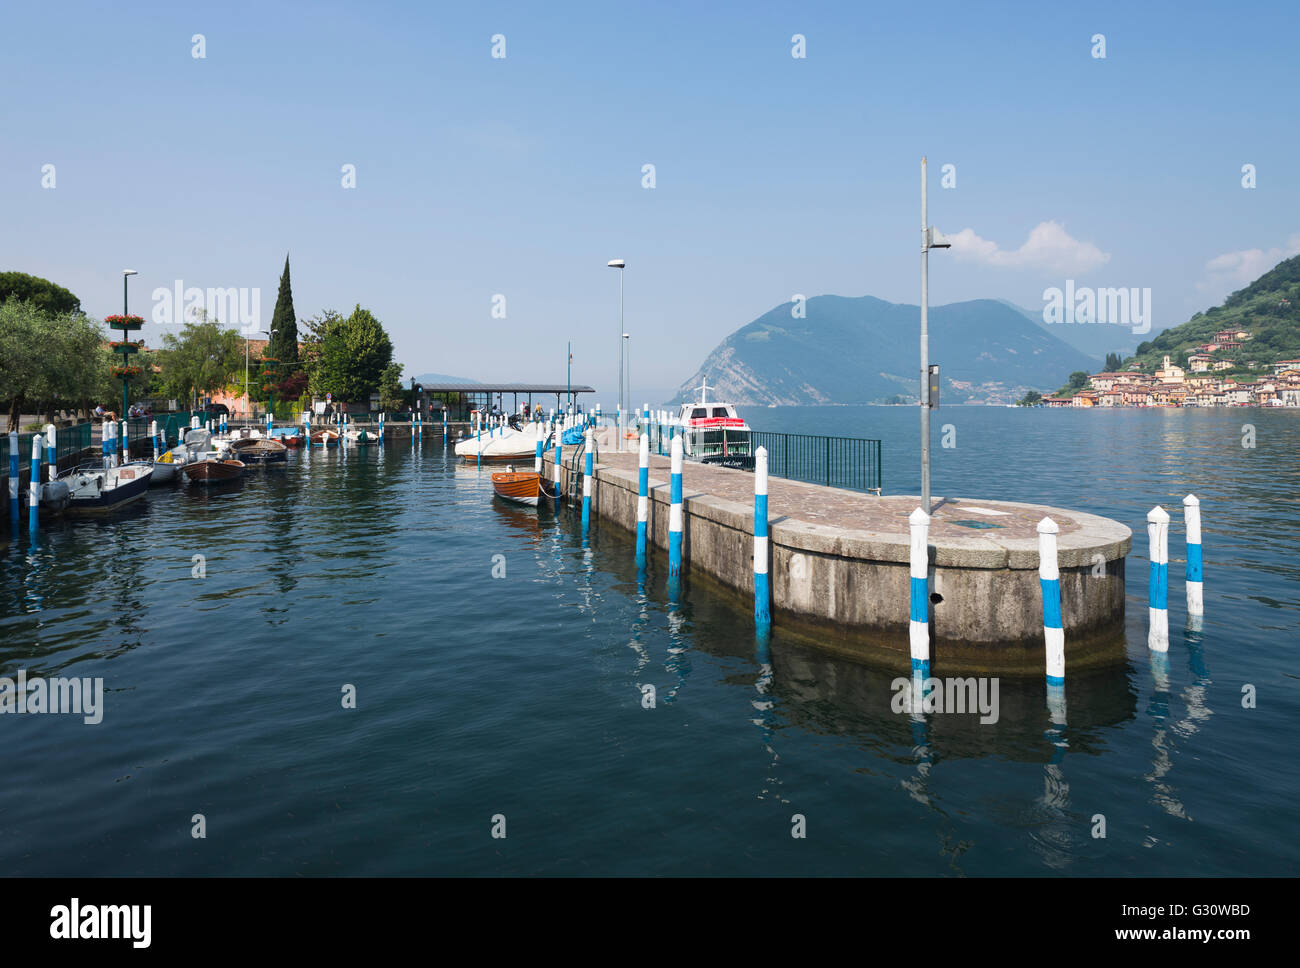 Colorful poles at the port of Sulzano on Lake Iseo with the panorama of Monte Isola and the rocky coast, Lombardy, - Stock Image